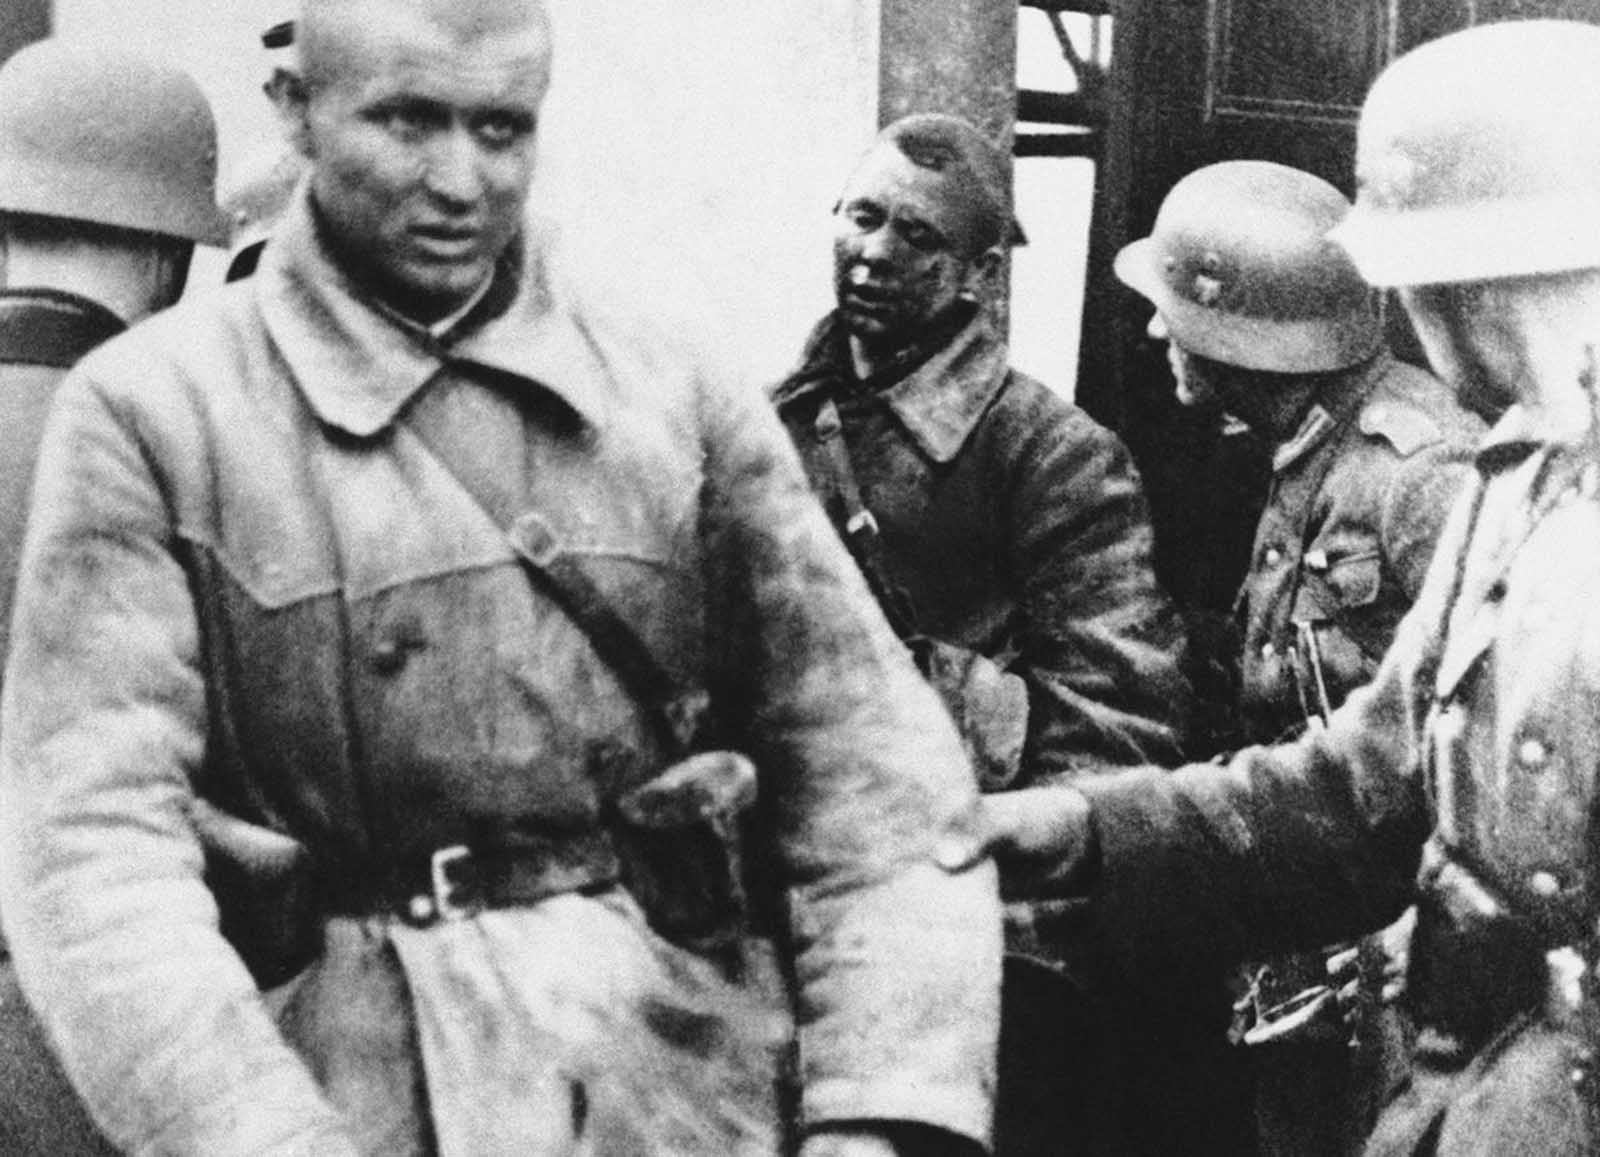 Russian prisoners of war, taken by the Germans on July 7, 1941.